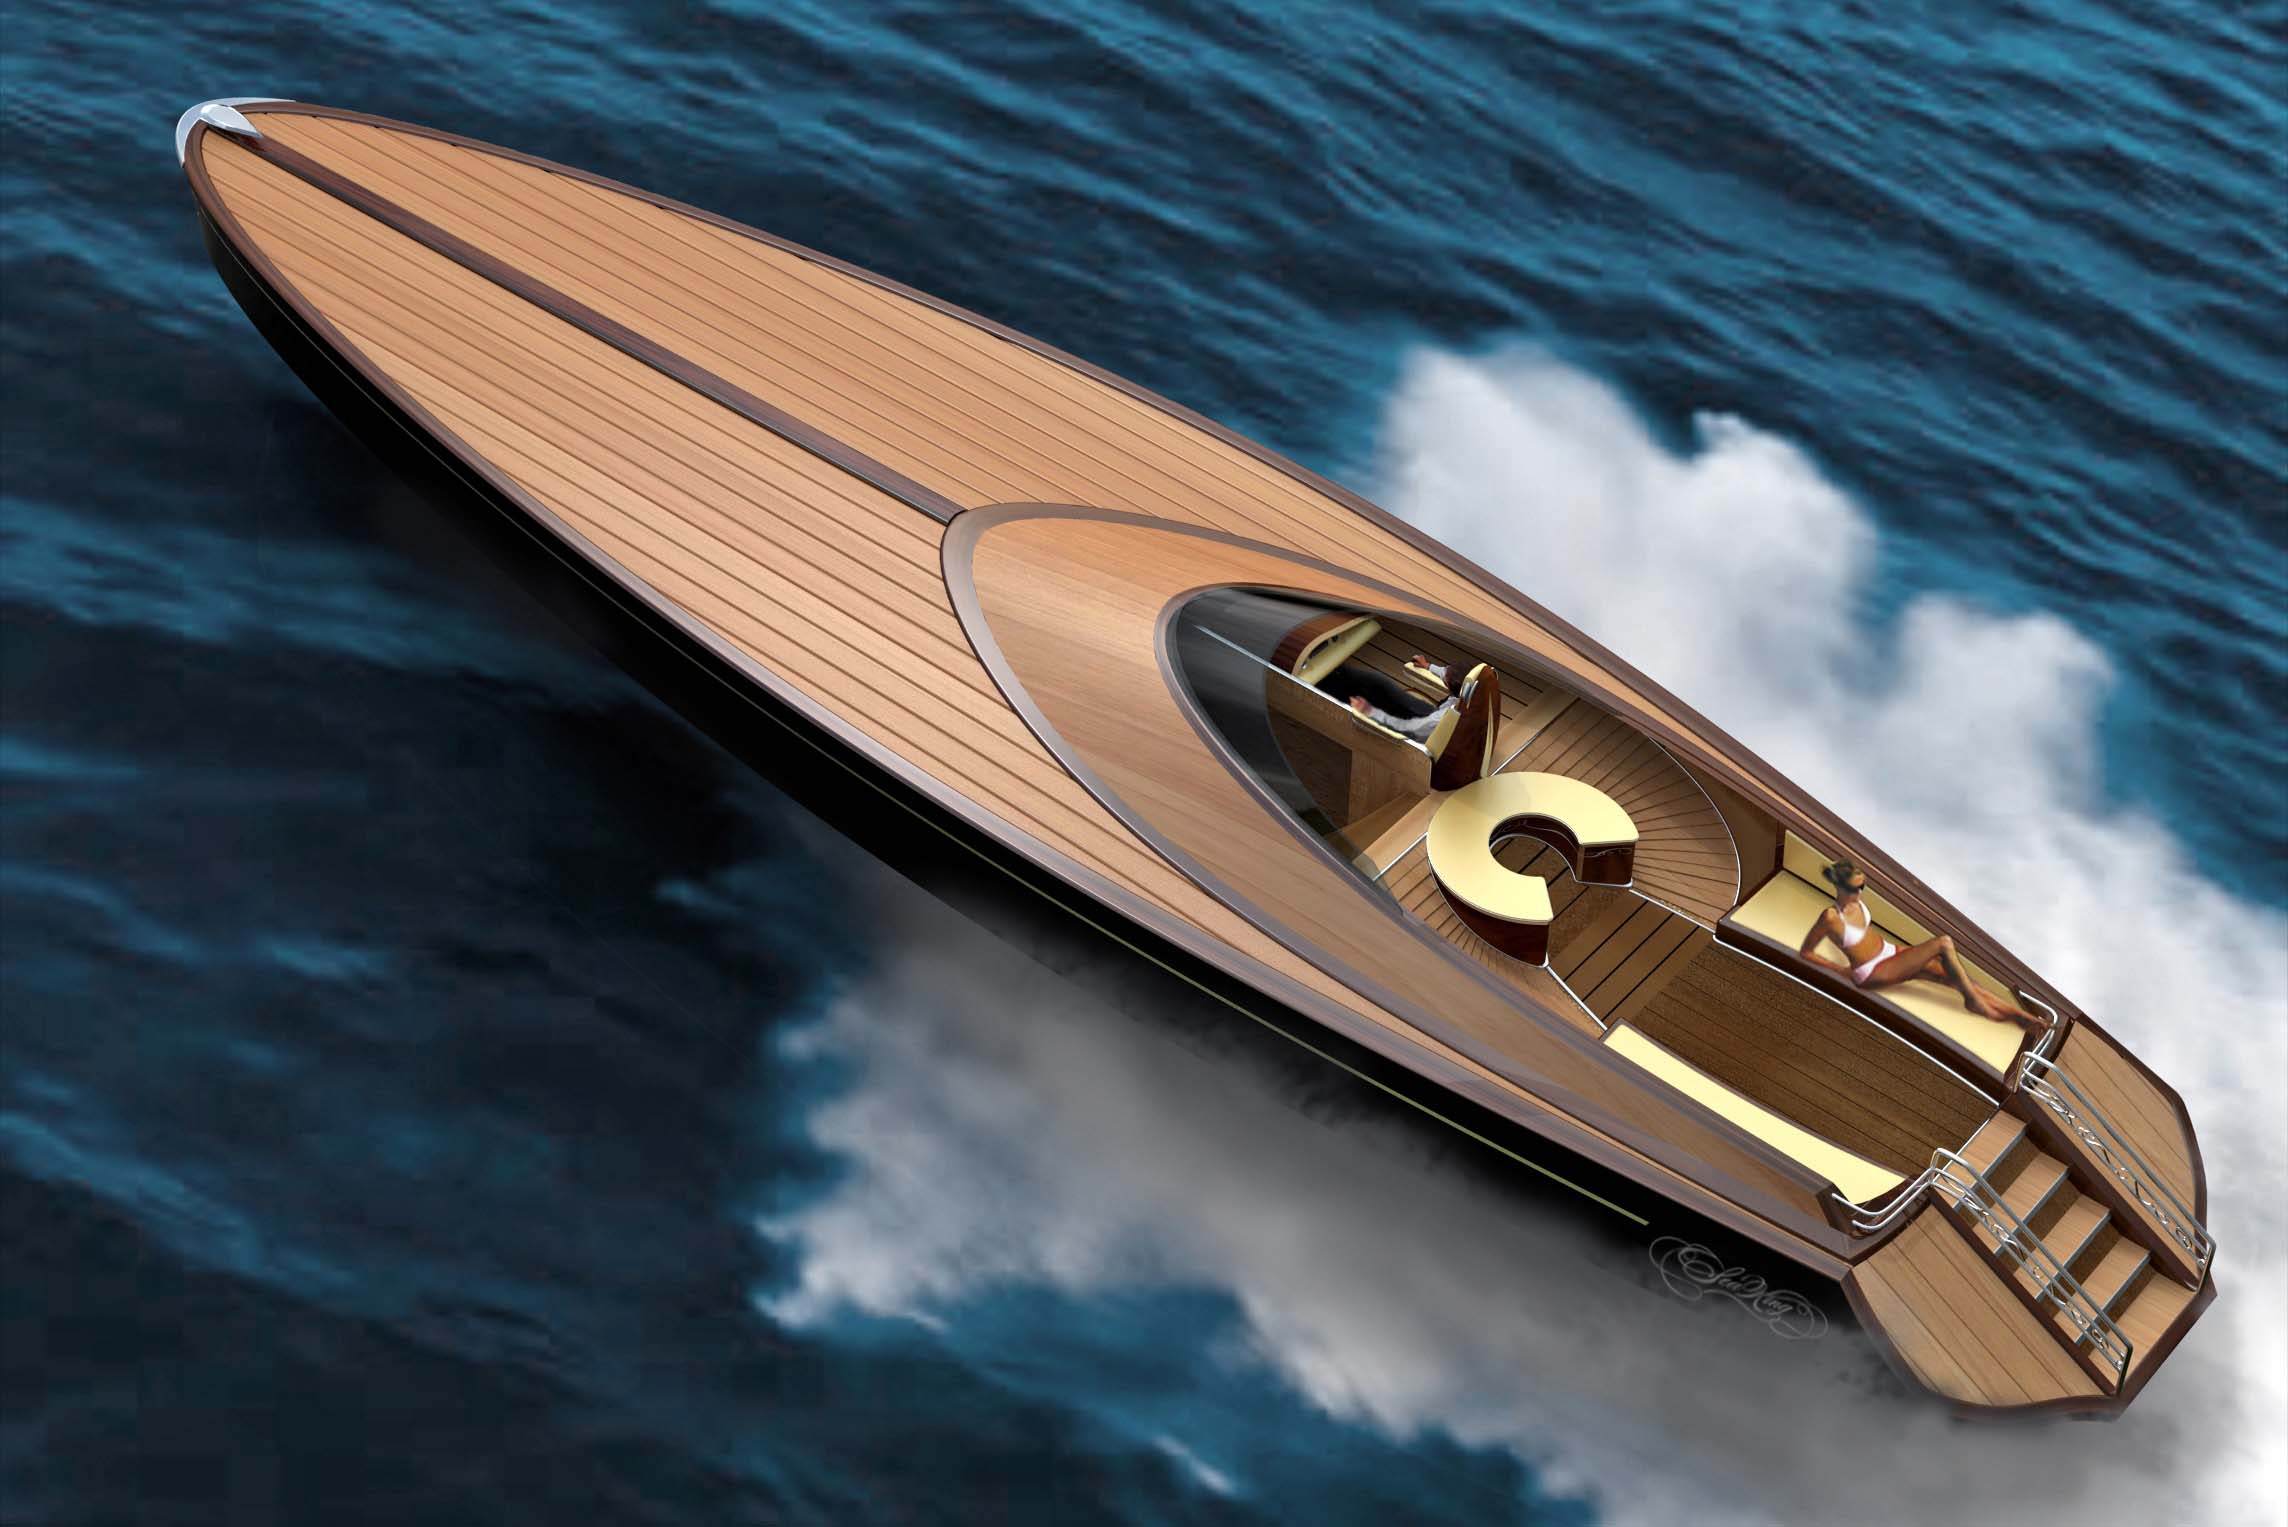 Sea King Bespoke Luxury Yacht By Adam Schacter At Coroflot Com